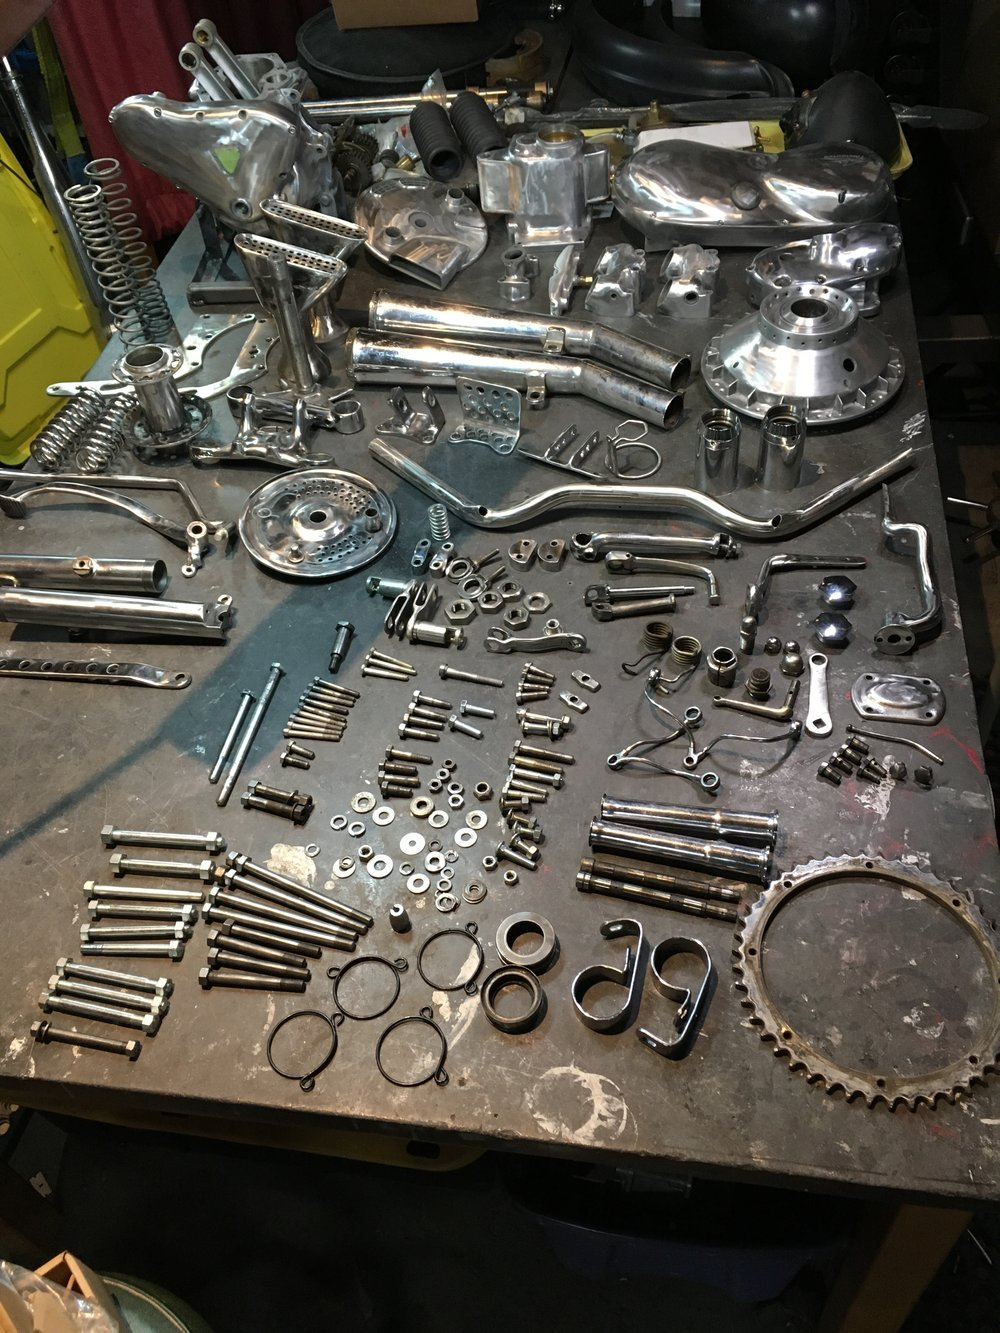 Besides documenting the parts for the plater, it is a good reference to have for assembly.